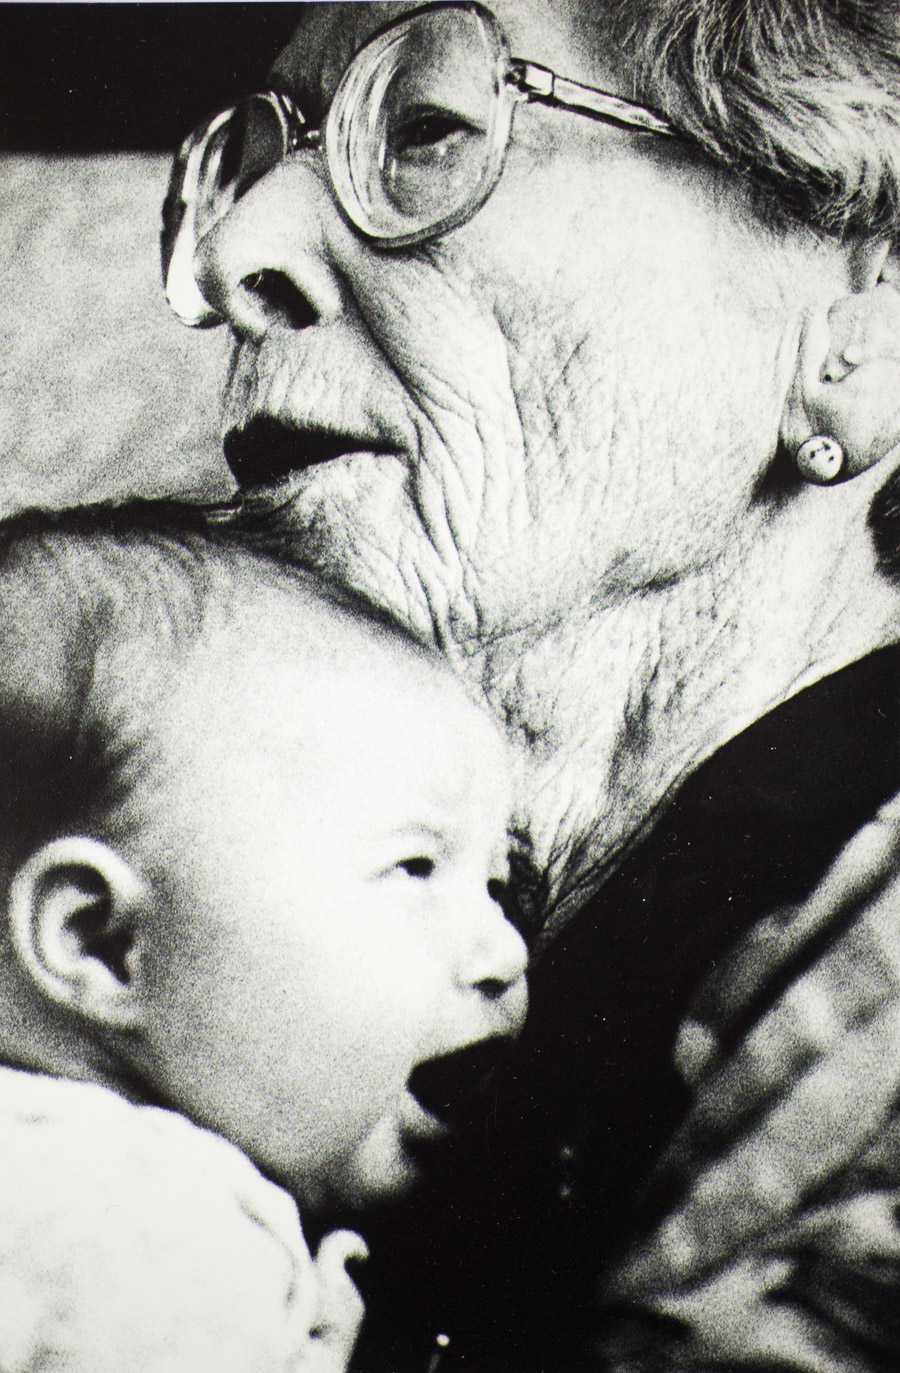 Photo I Never Took - tutu holding a baby